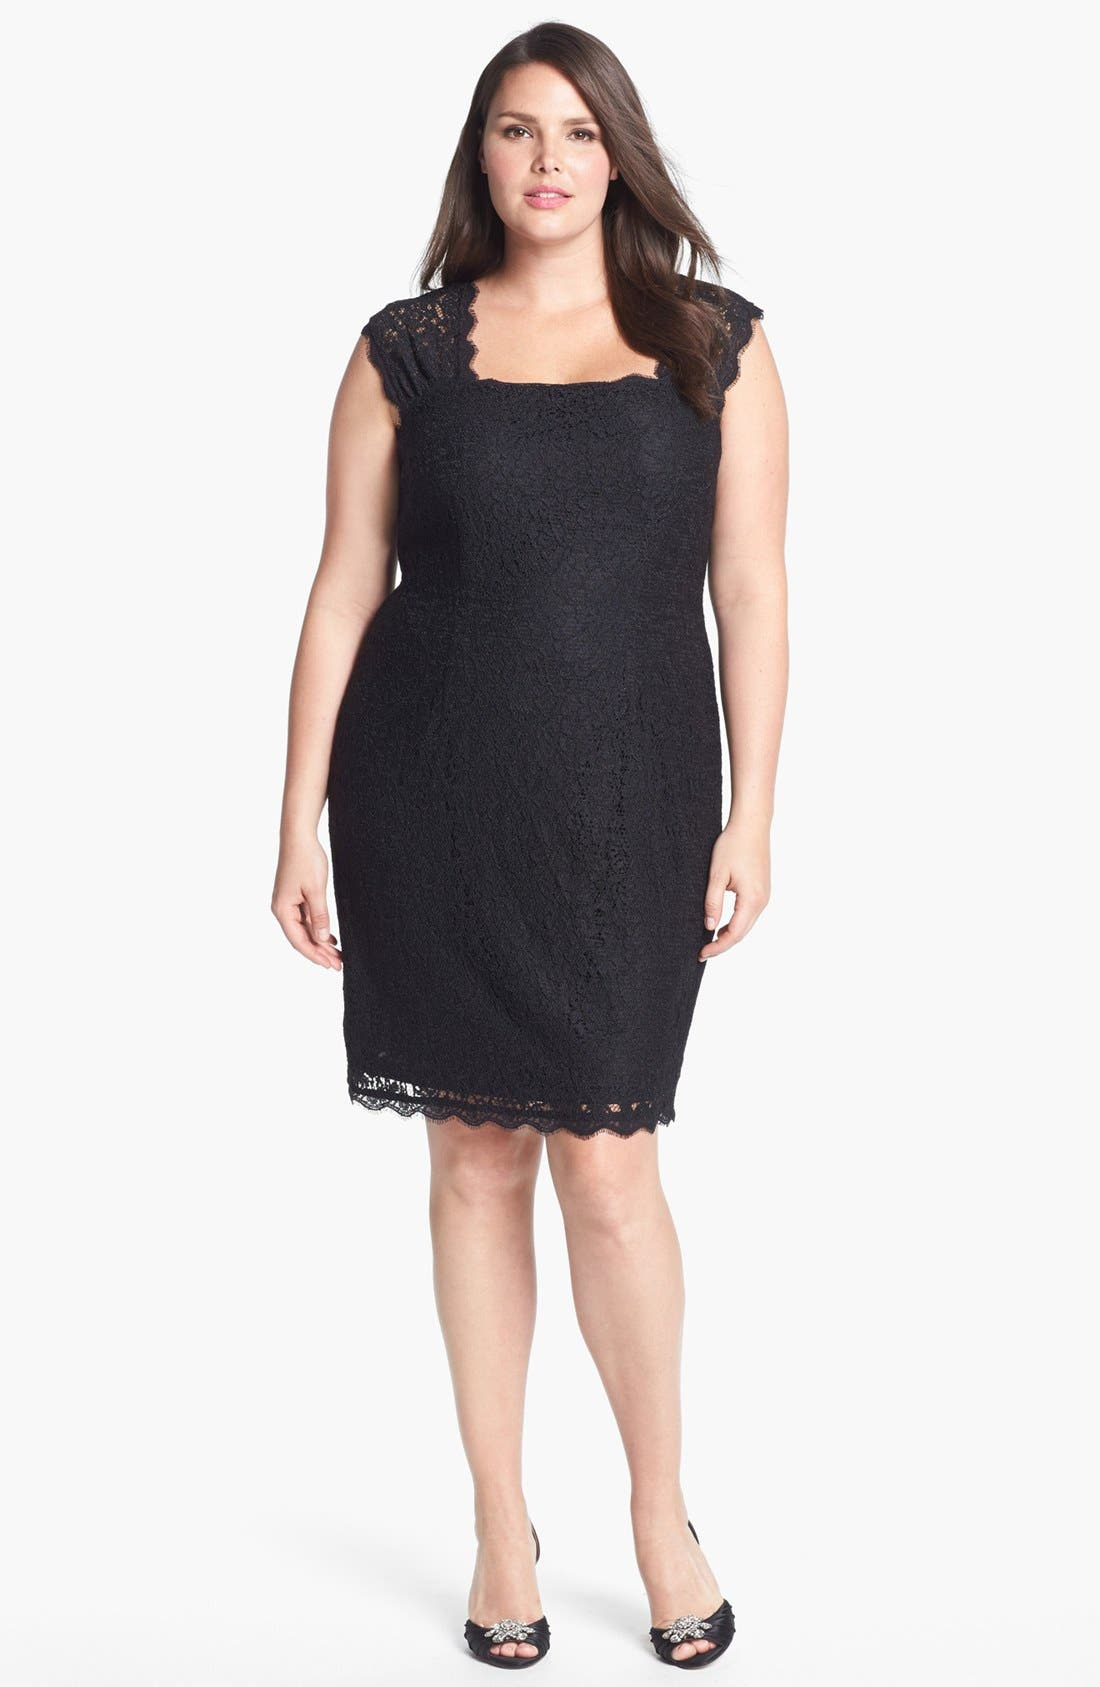 Alternate Image 1 Selected - Adrianna Papell Lace Sheath Dress (Plus Size)